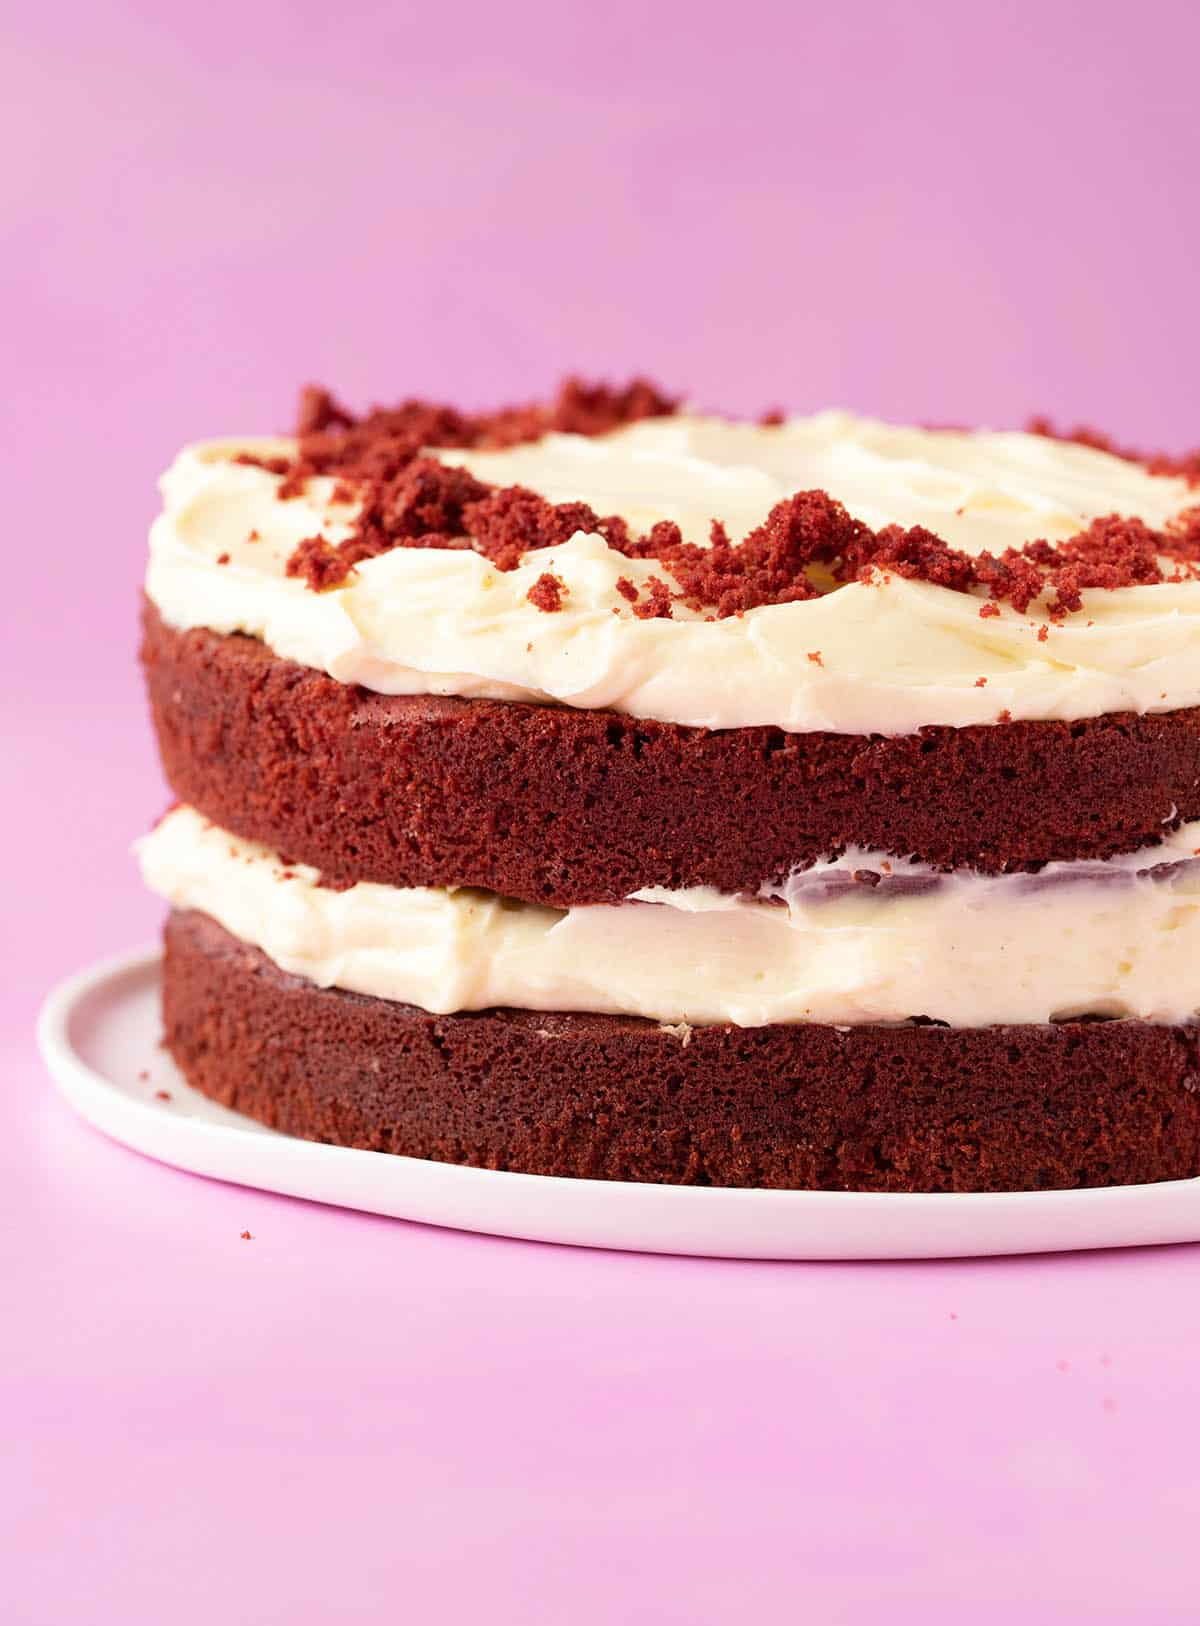 A beautiful two layer Red Velvet Cake on a white plate